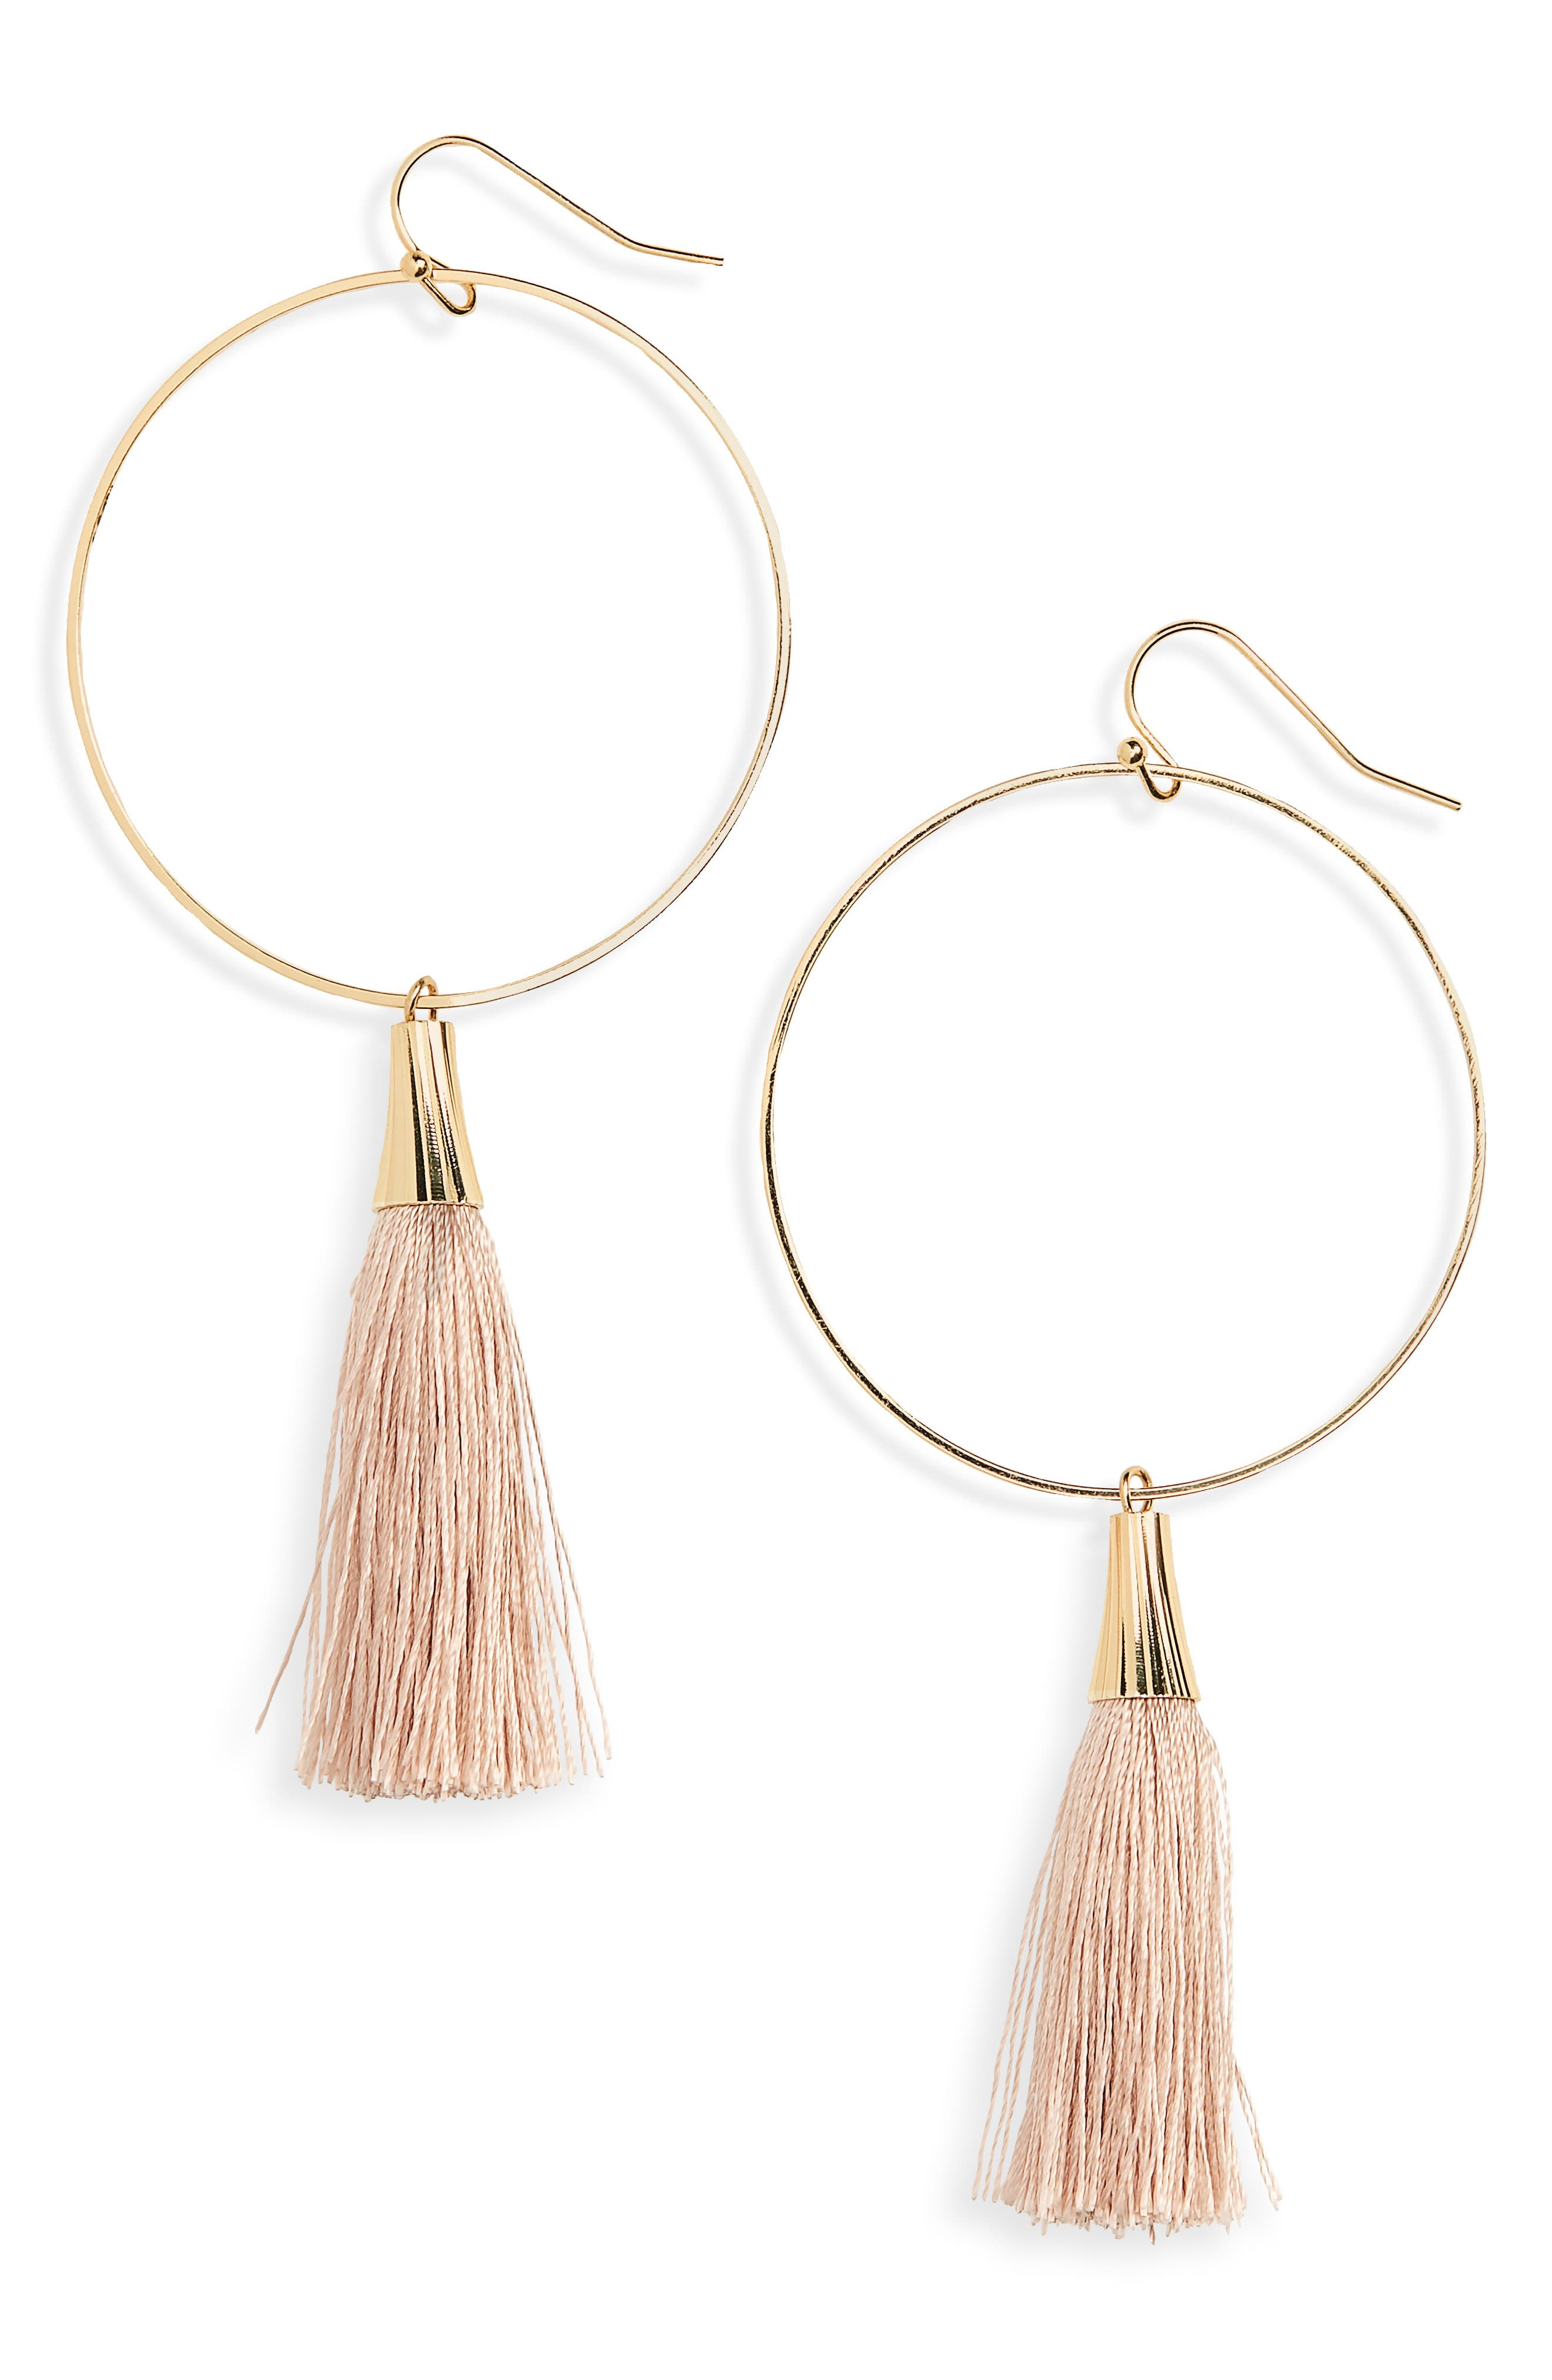 Tassel Hoop Earrings,                             Main thumbnail 1, color,                             Beige